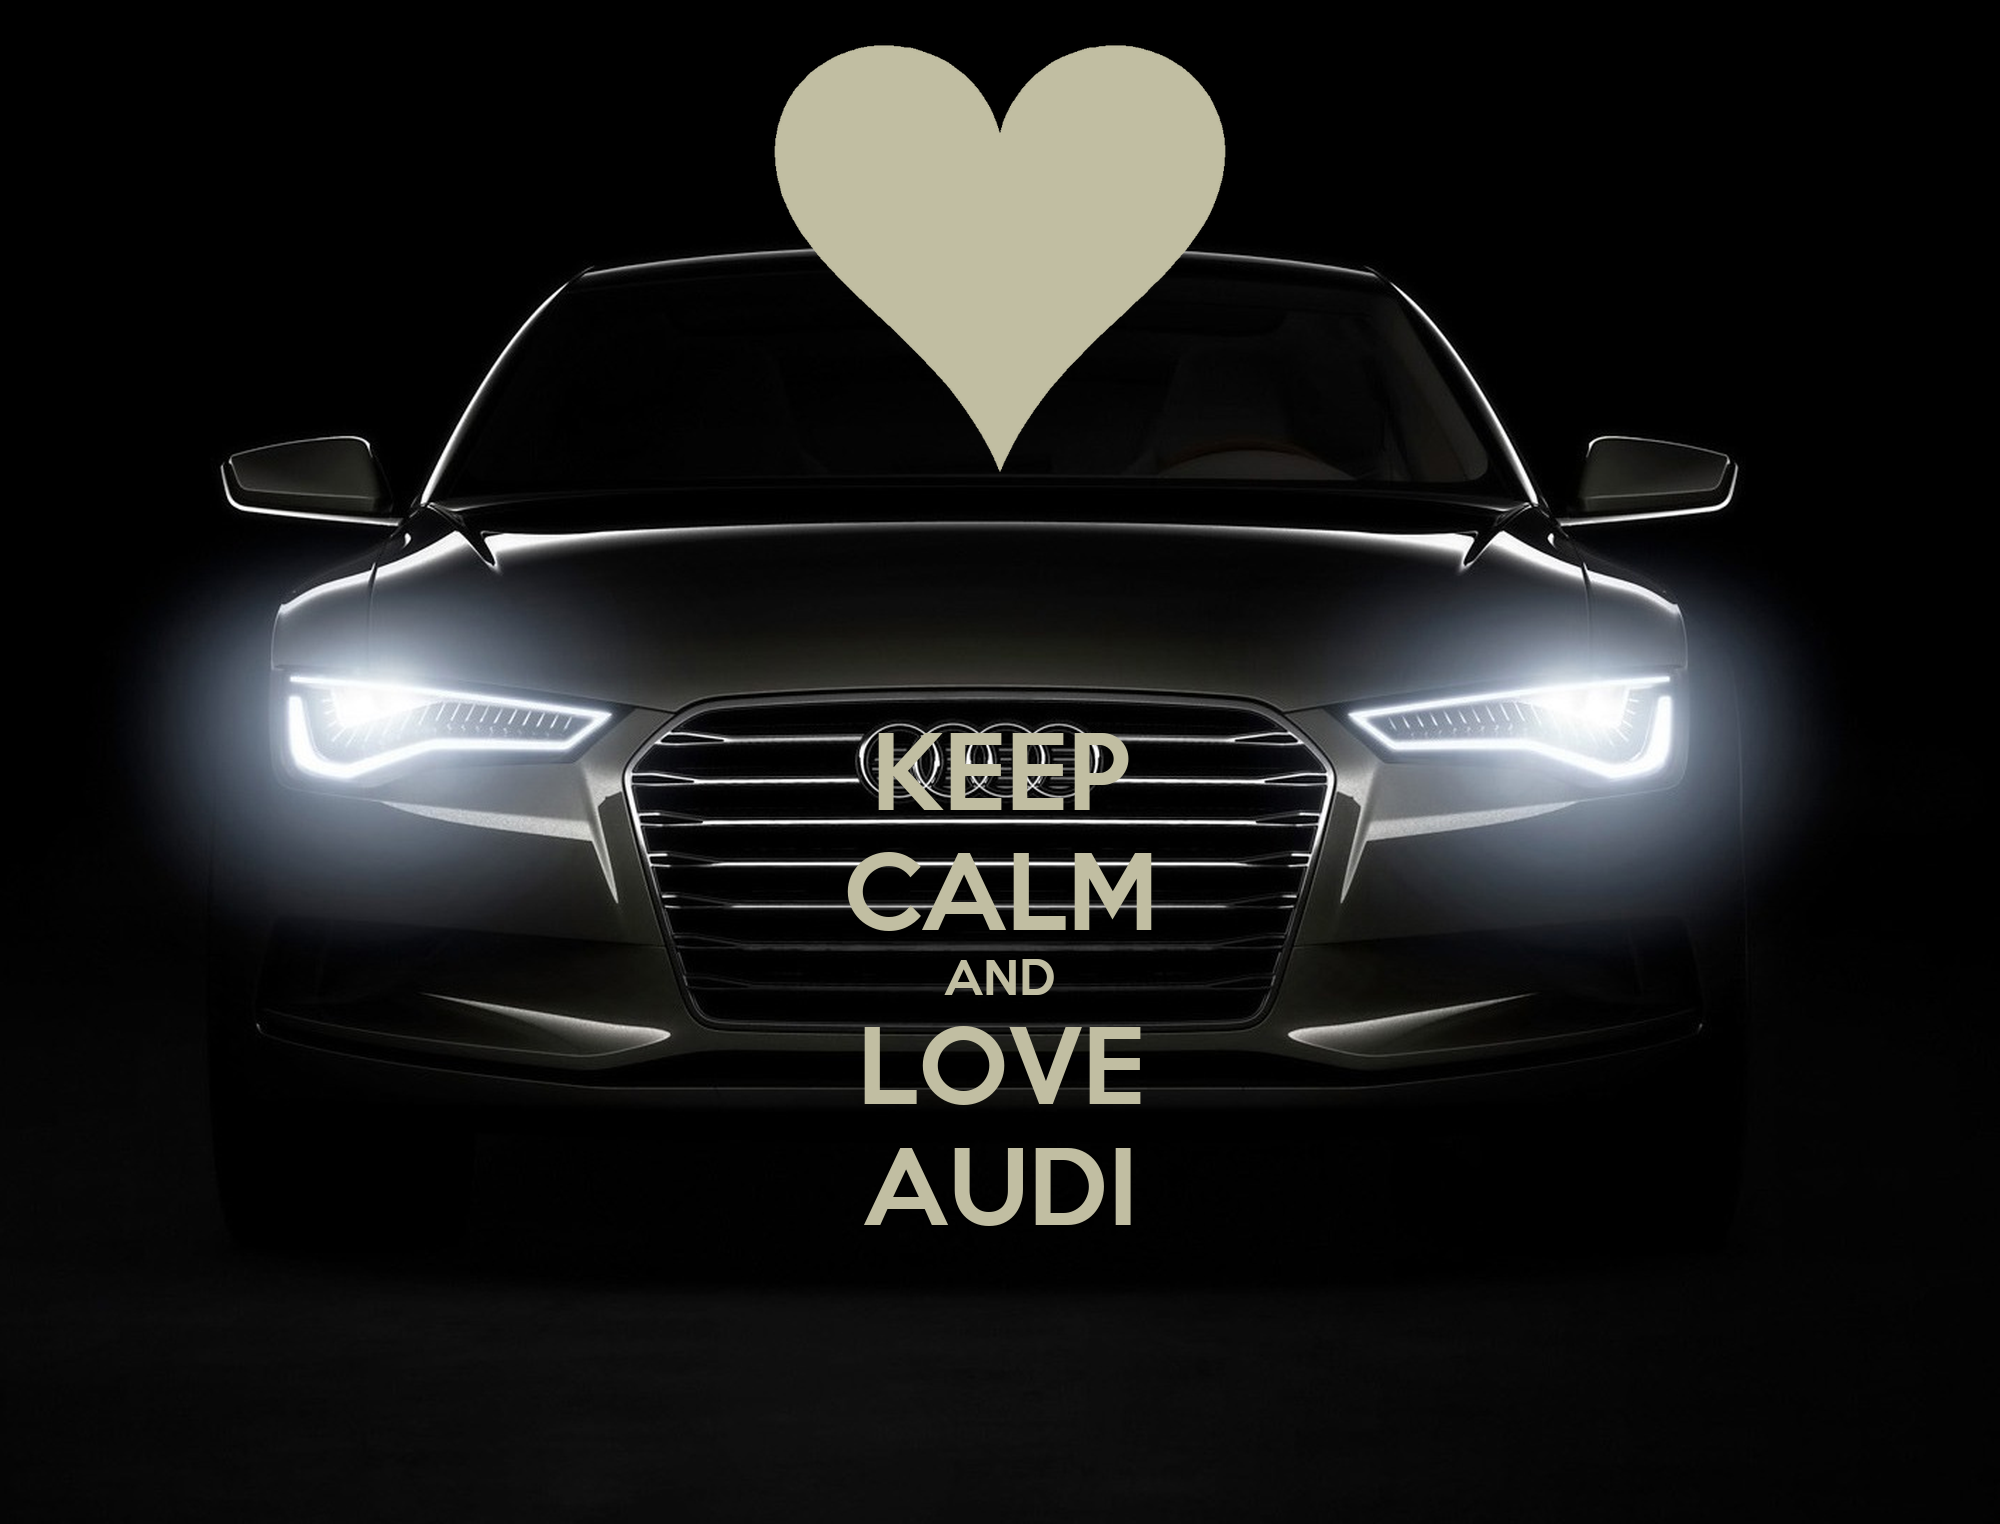 Keep Calm And Love Audi >> KEEP CALM AND LOVE AUDI - KEEP CALM AND CARRY ON Image Generator